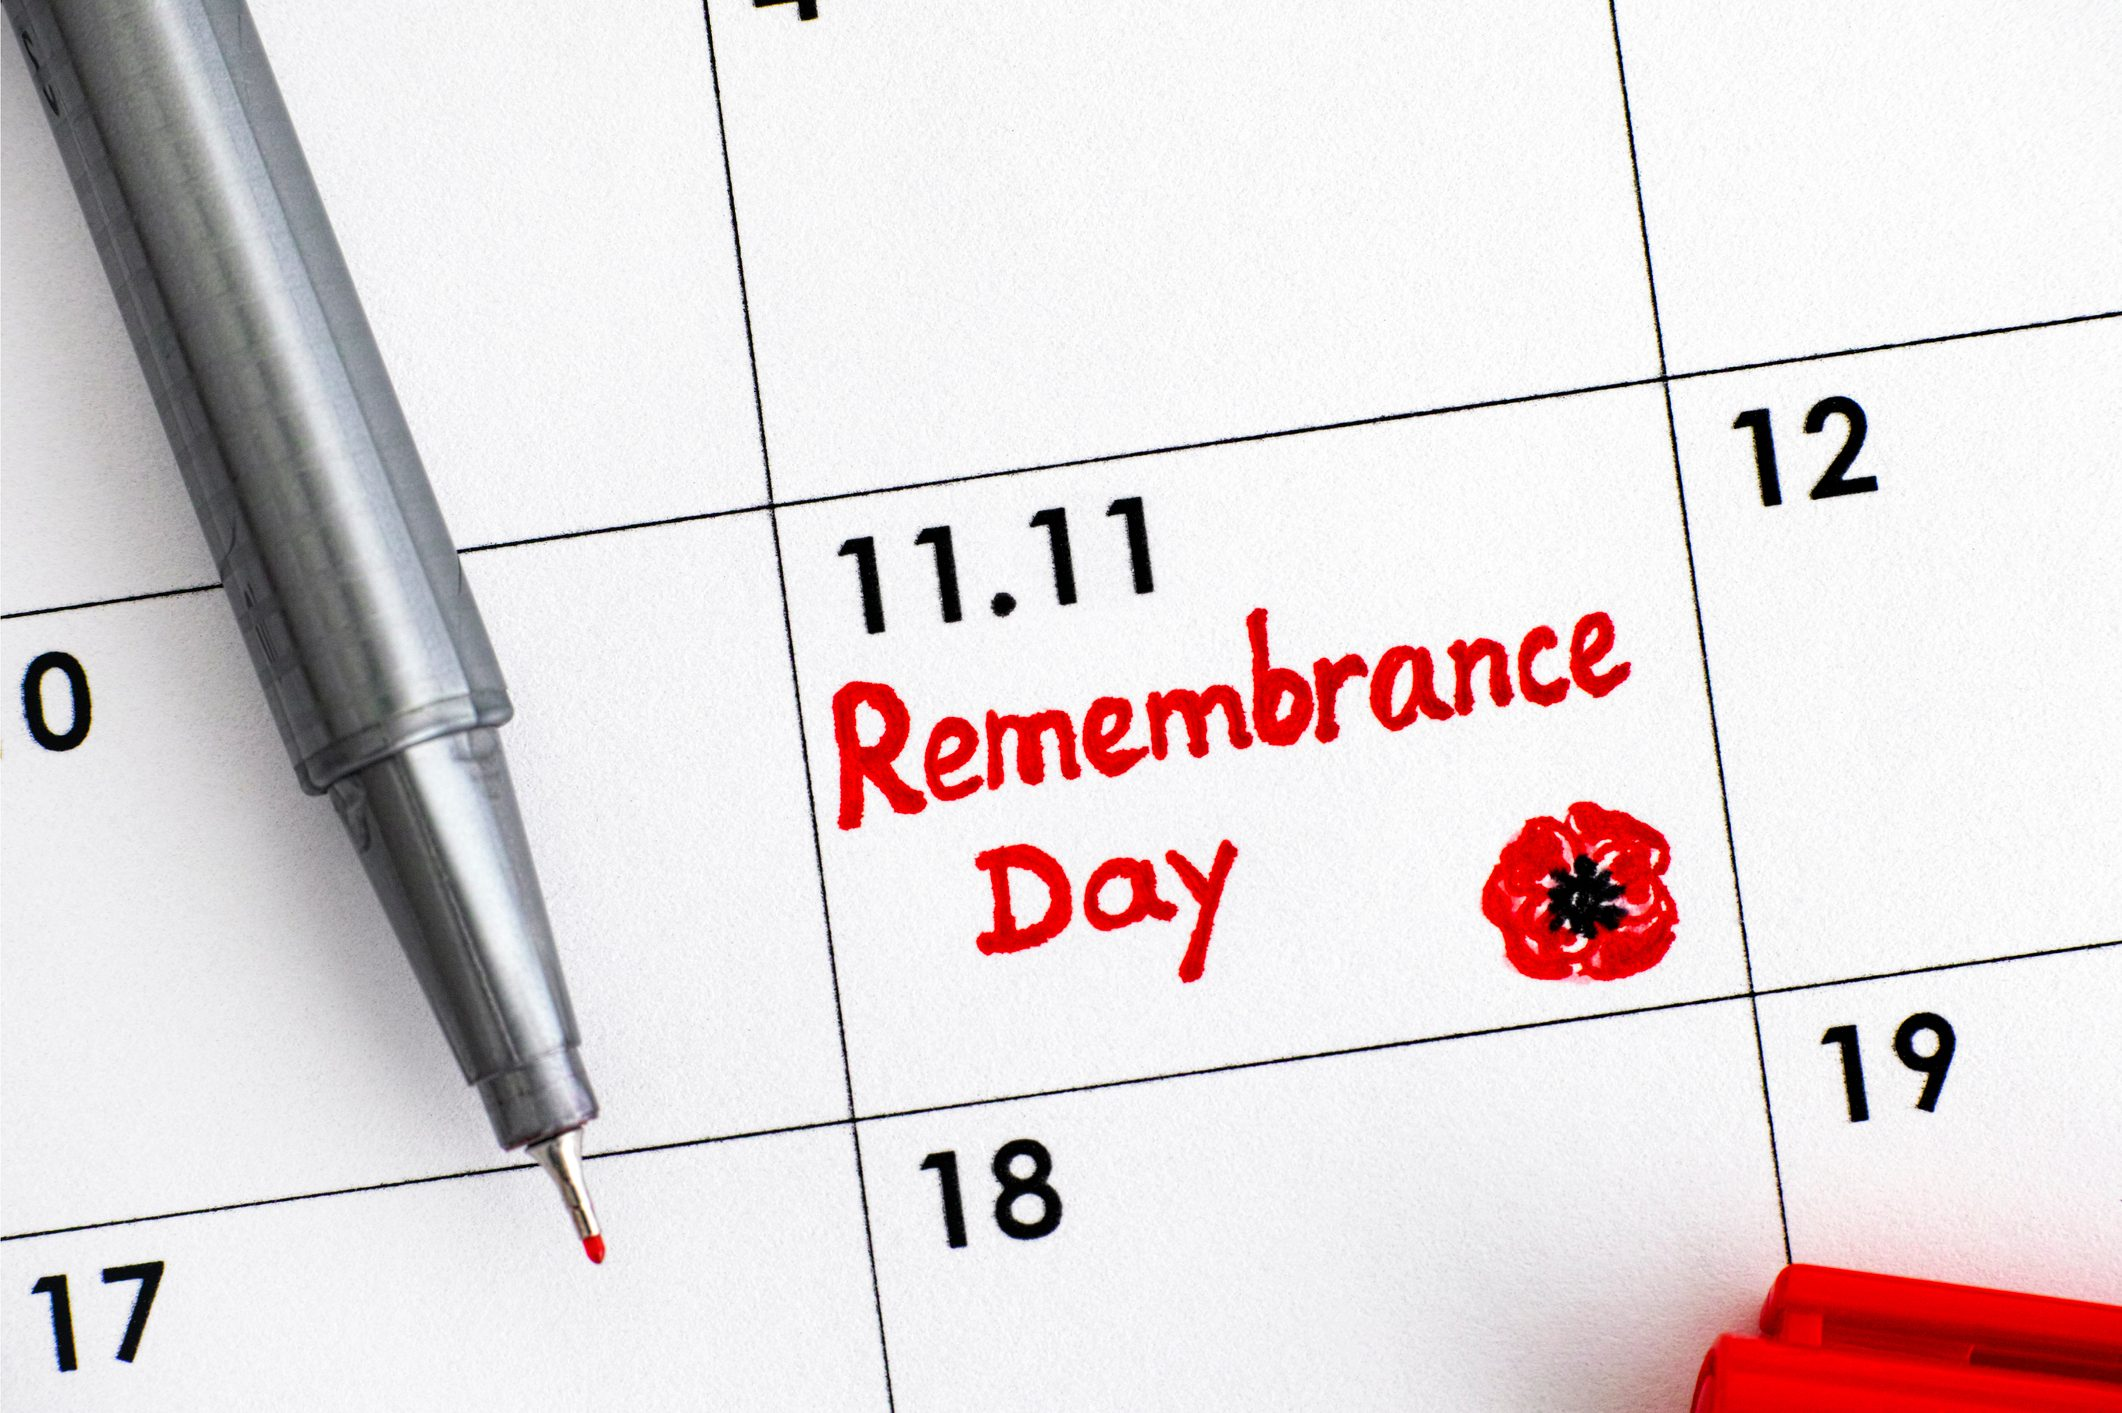 Reminder Remembrance Day in calendar with red pen.